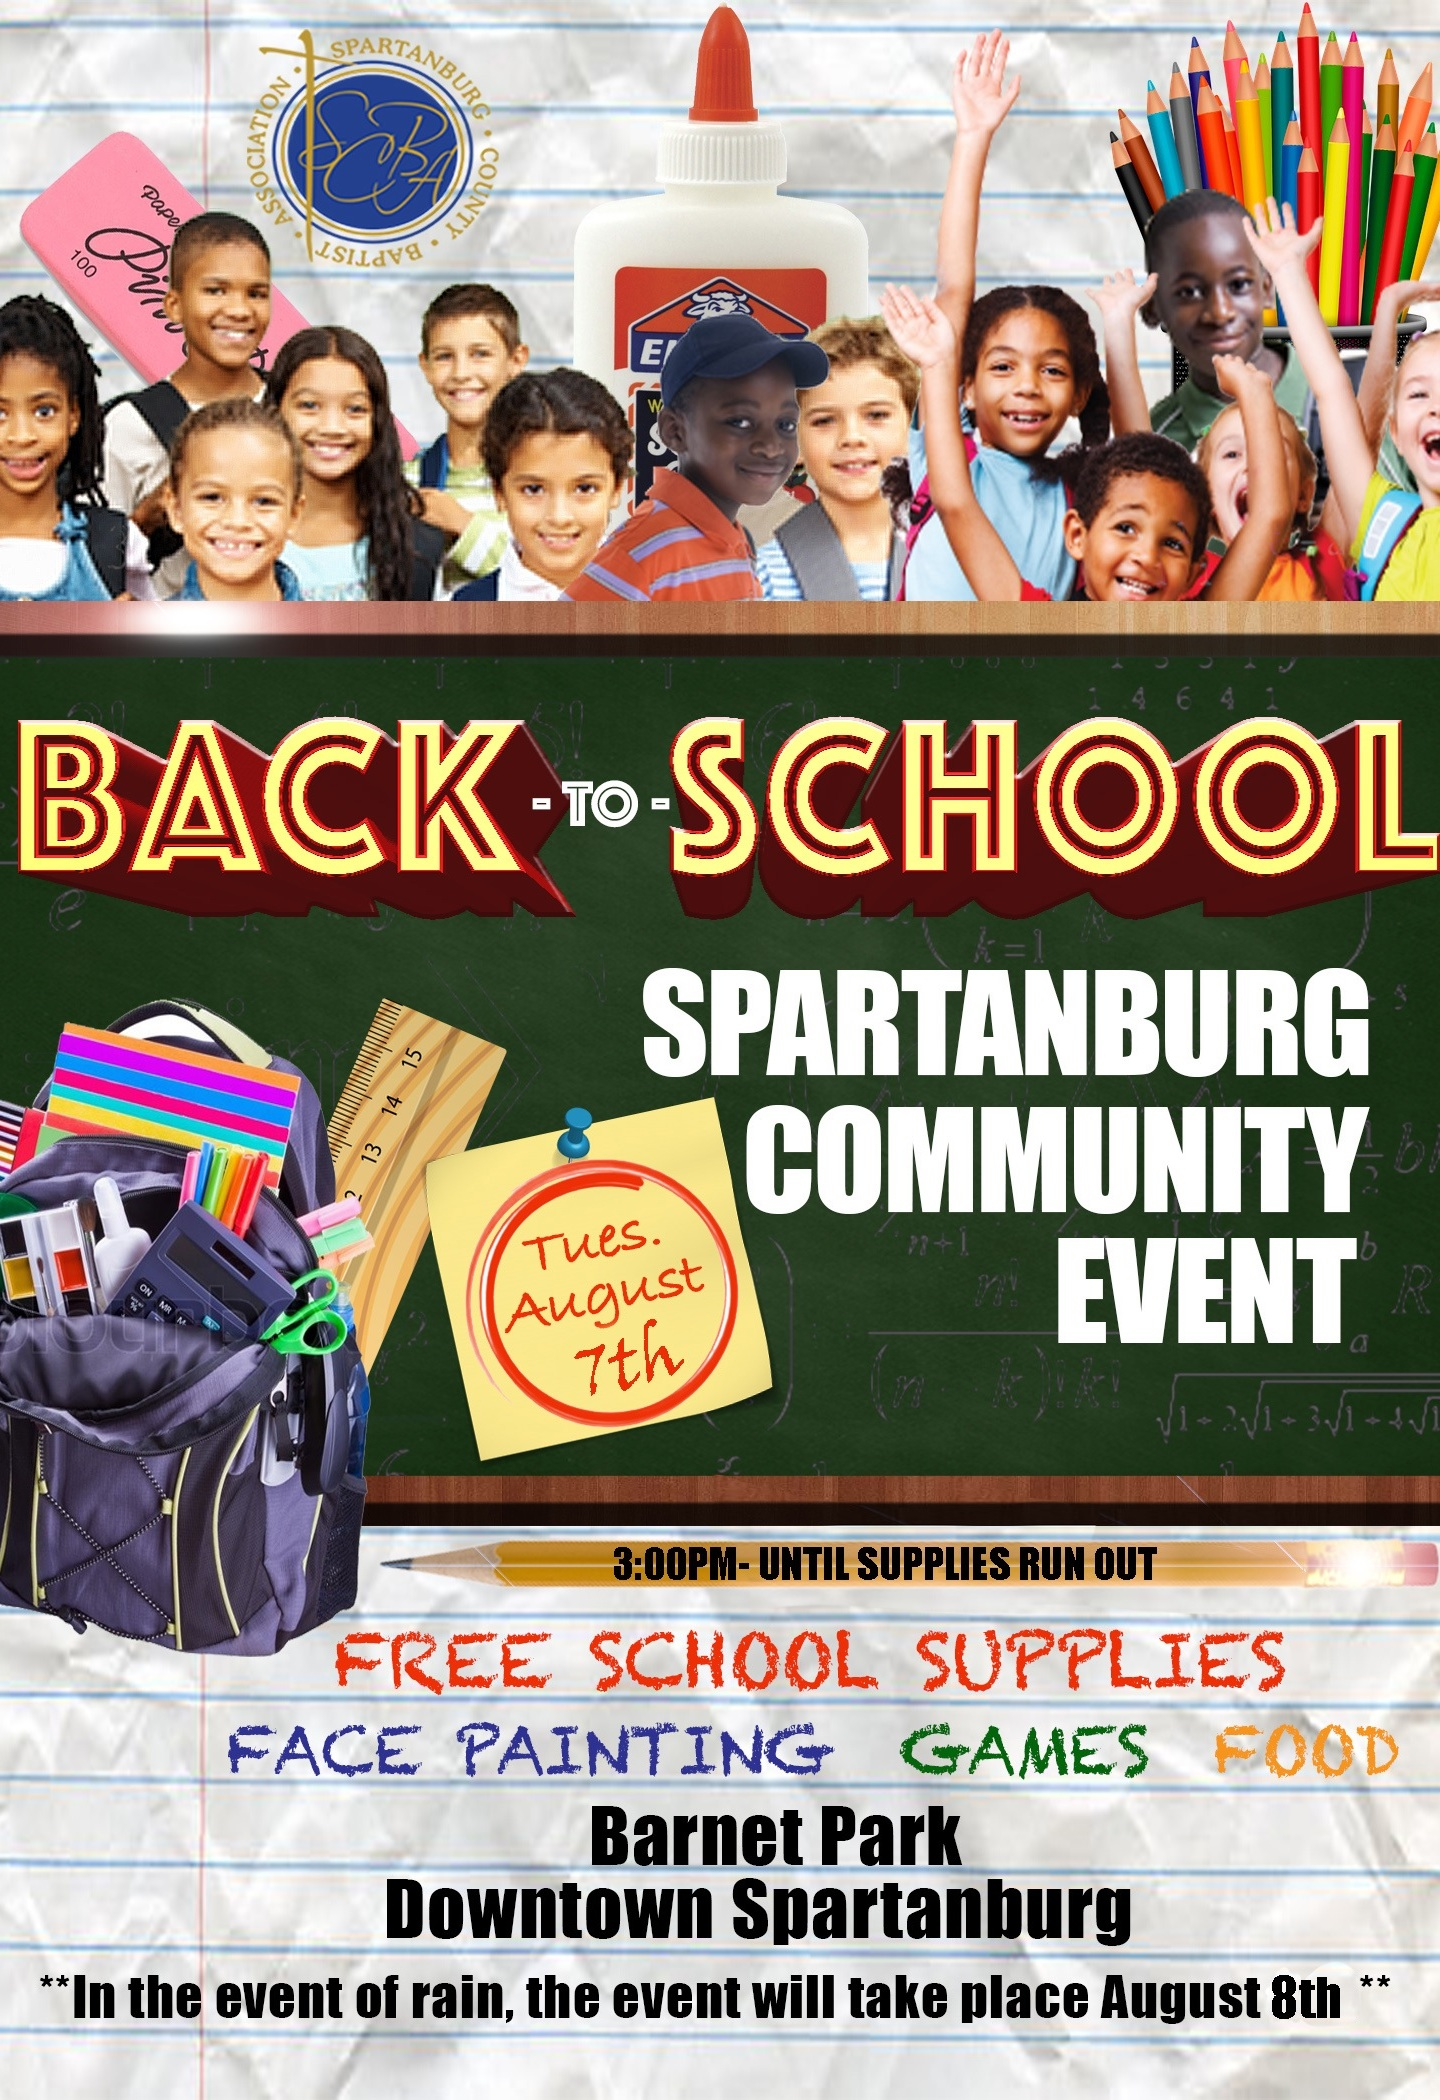 Back to School Spartanburg Community